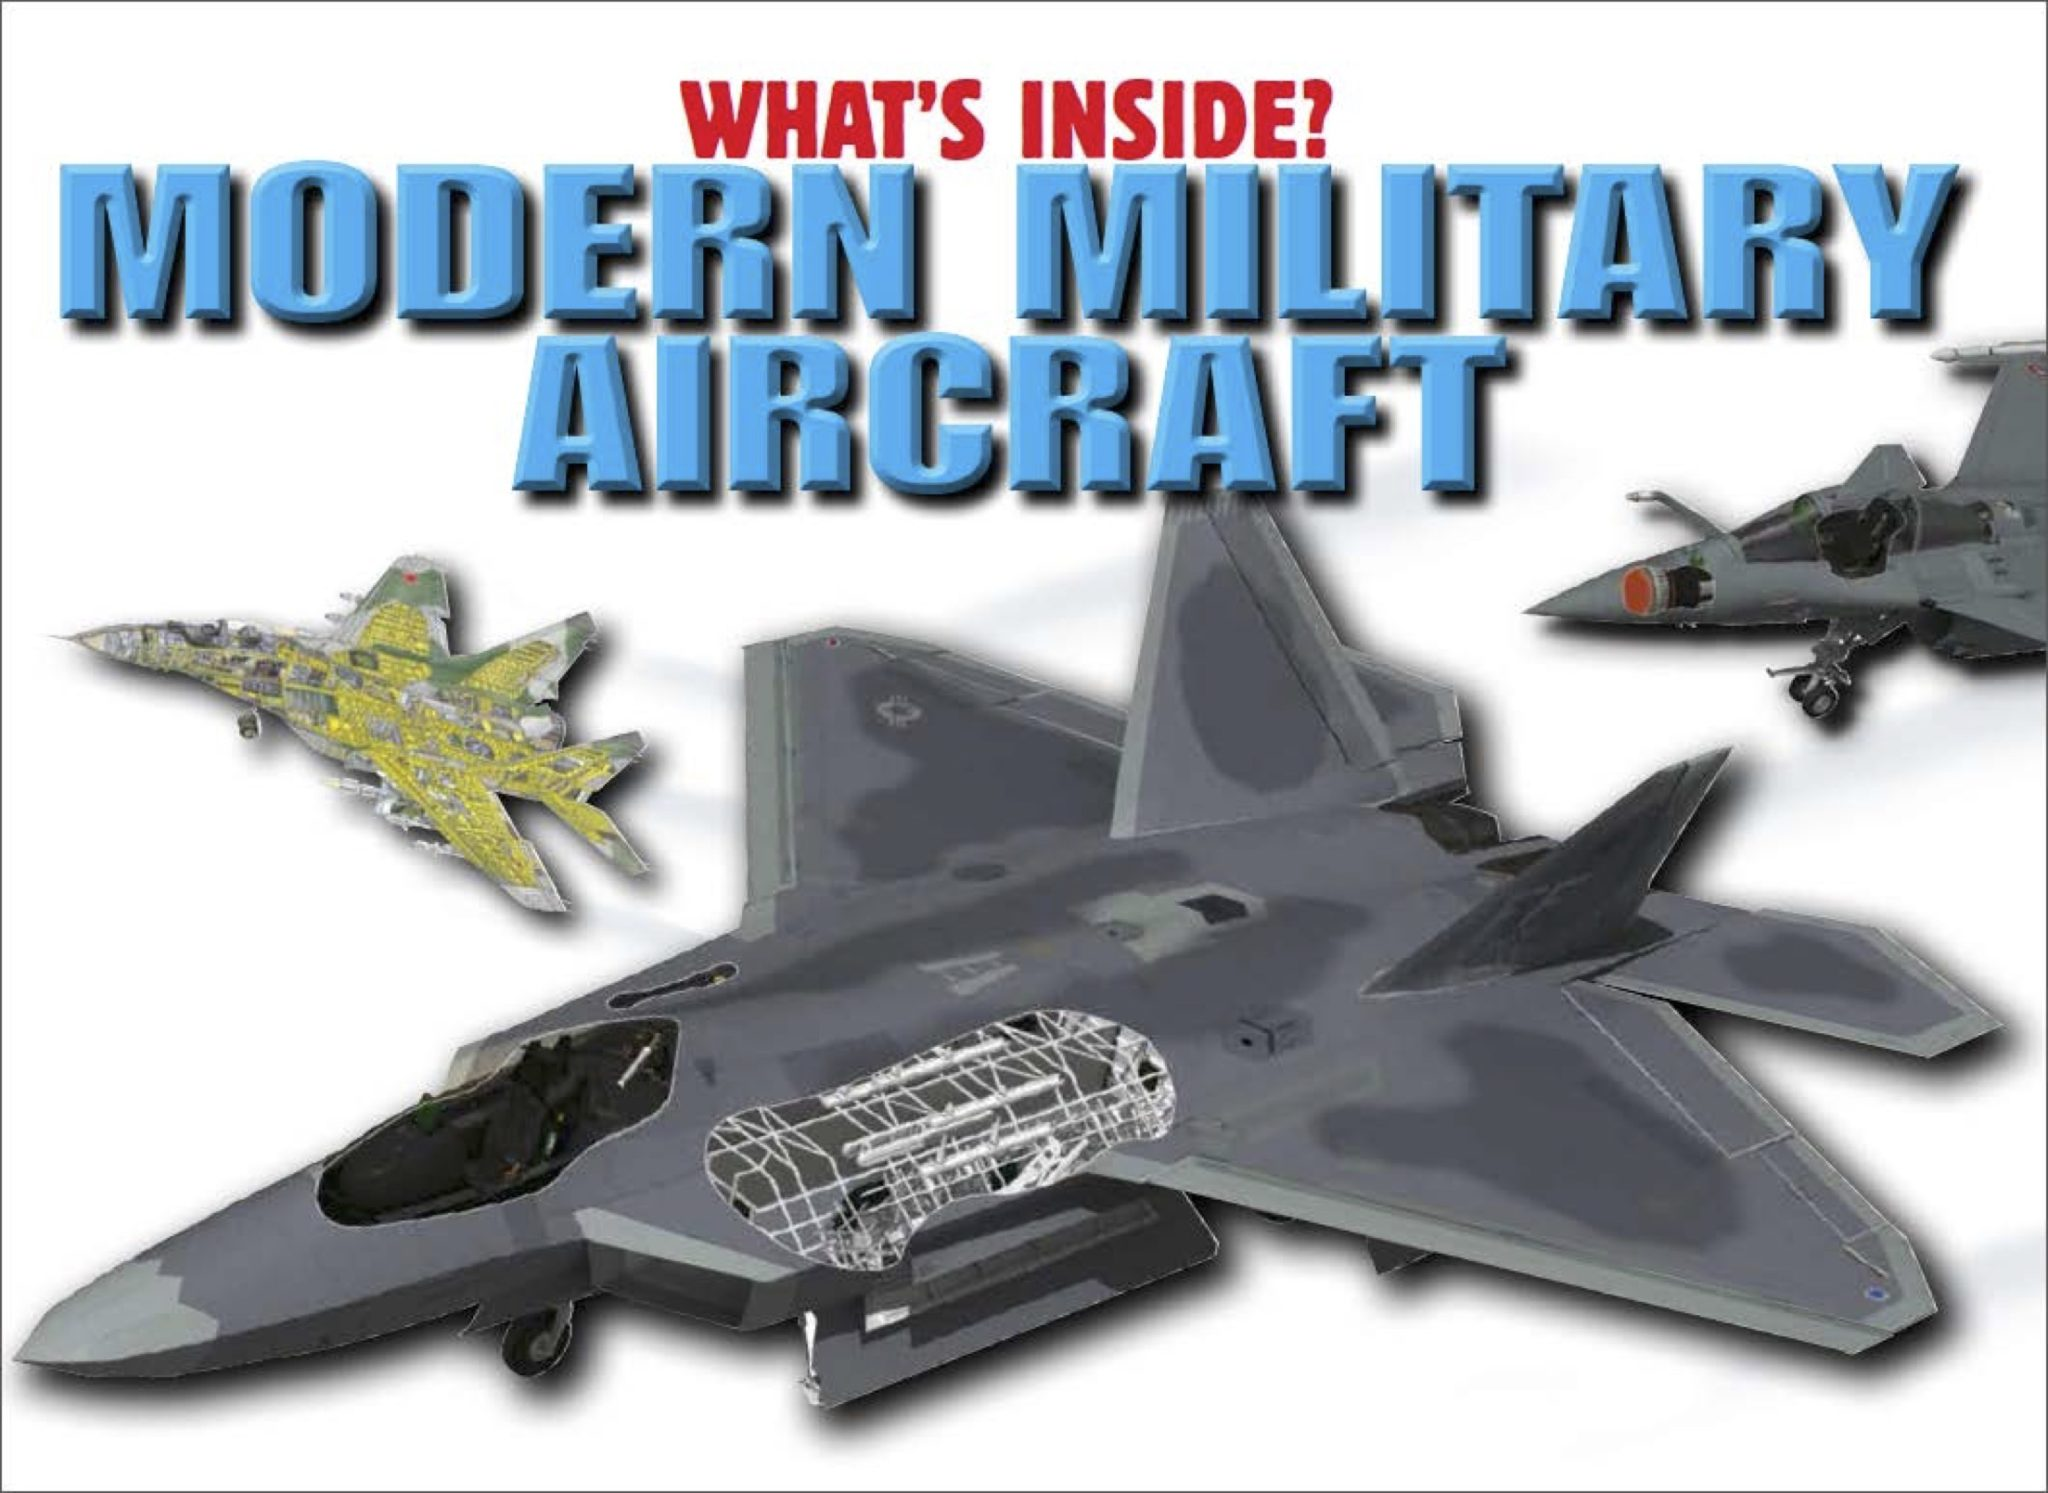 What's Inside? Modern Military Aircraft